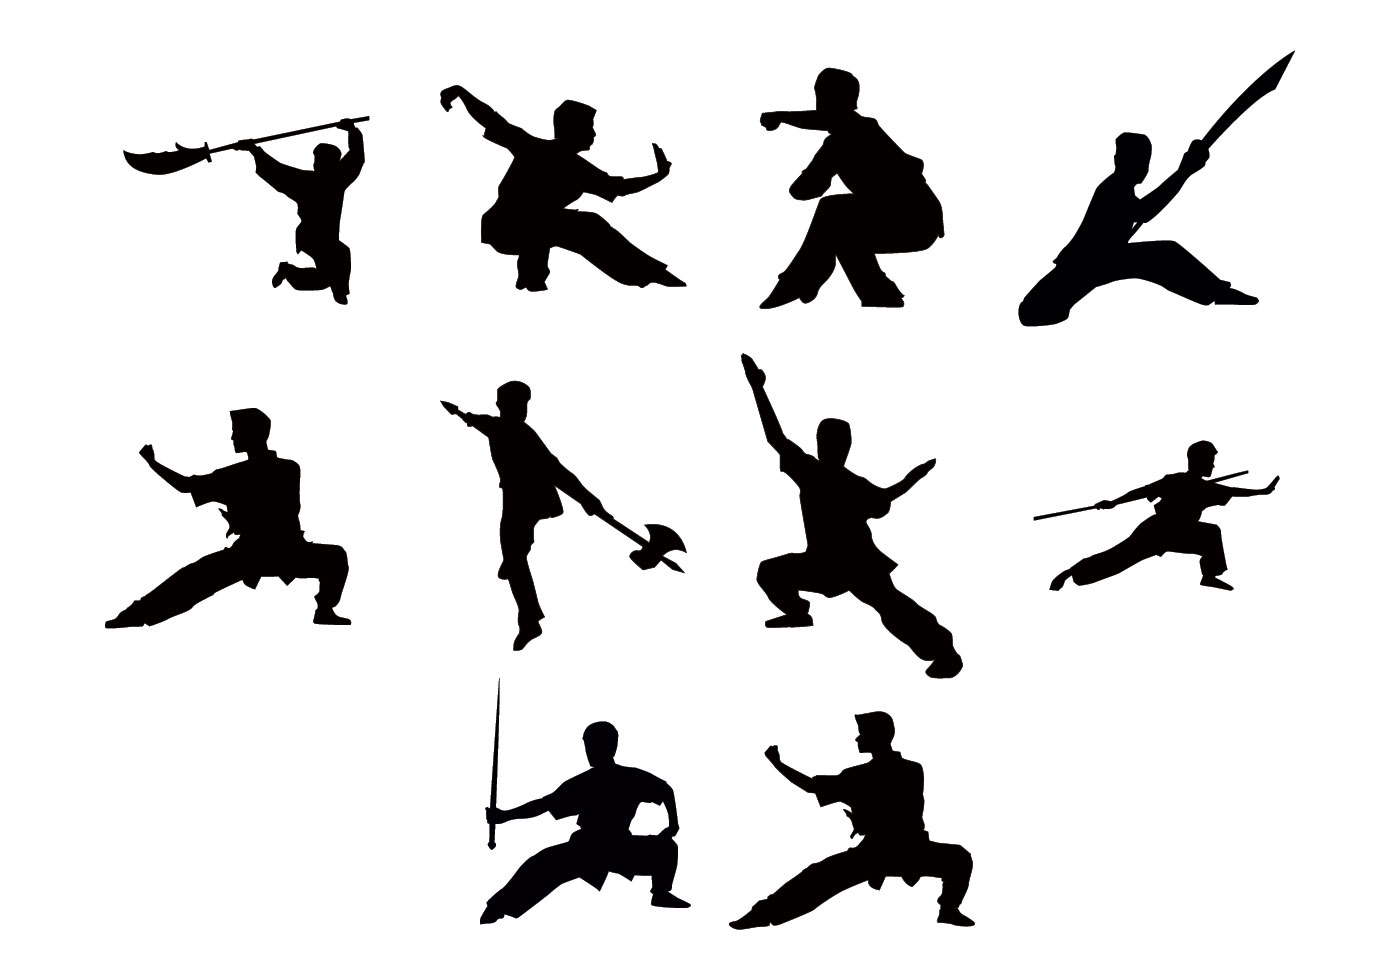 free wushu silhouettes vector download free vector art Yin Yang Black and White Clip Art Ocean Ying Yang Symbol